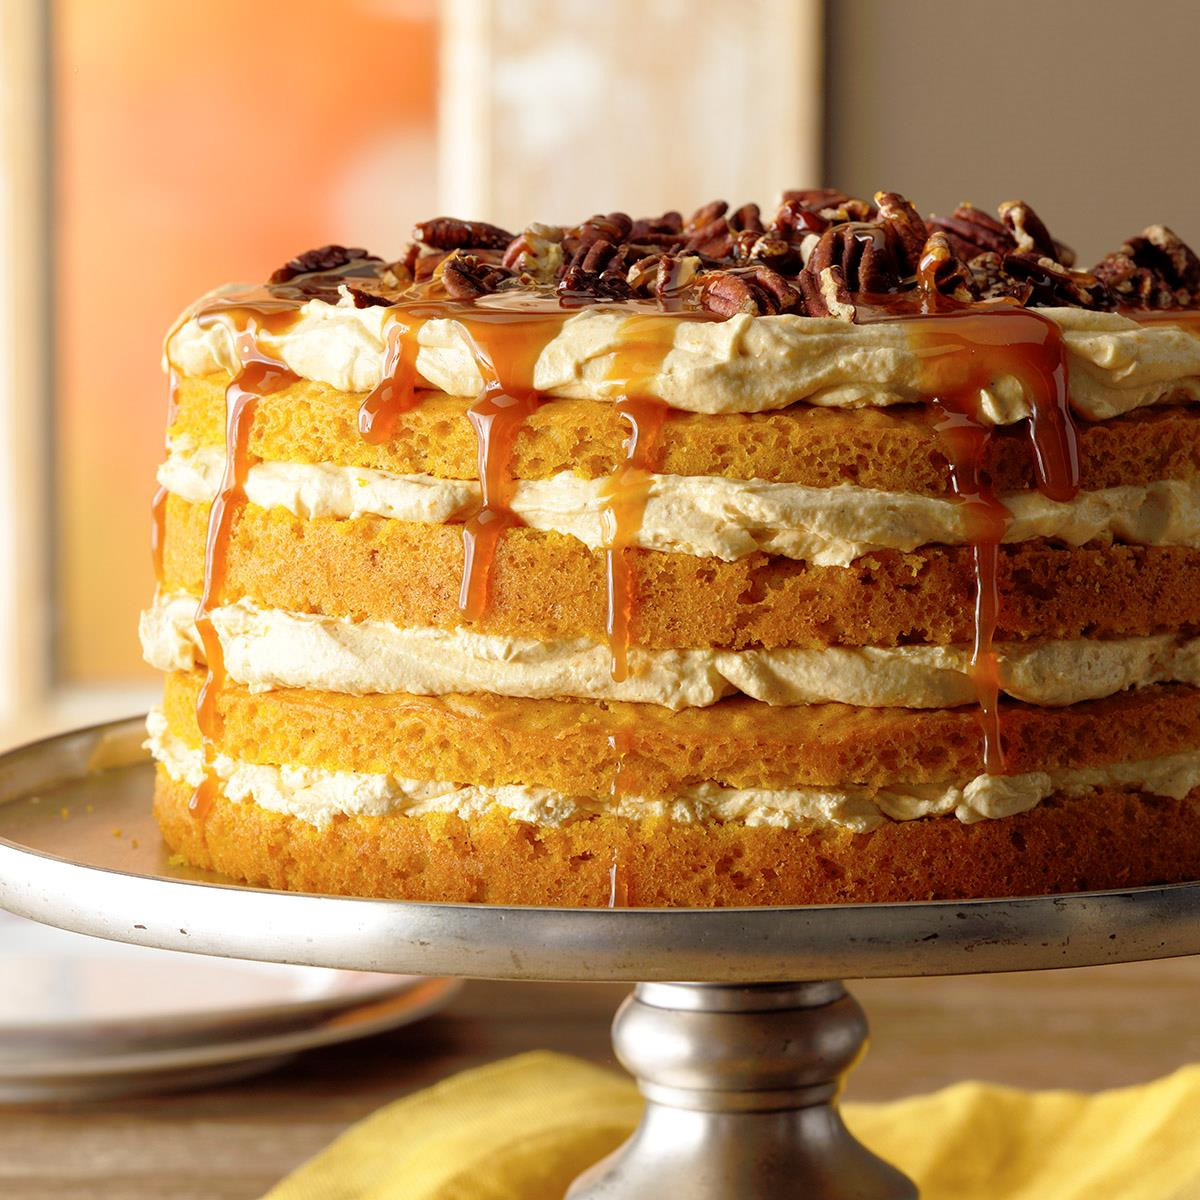 Fall Flavors For Desserts  Impressive Thanksgiving Desserts You Gotta Try This Year